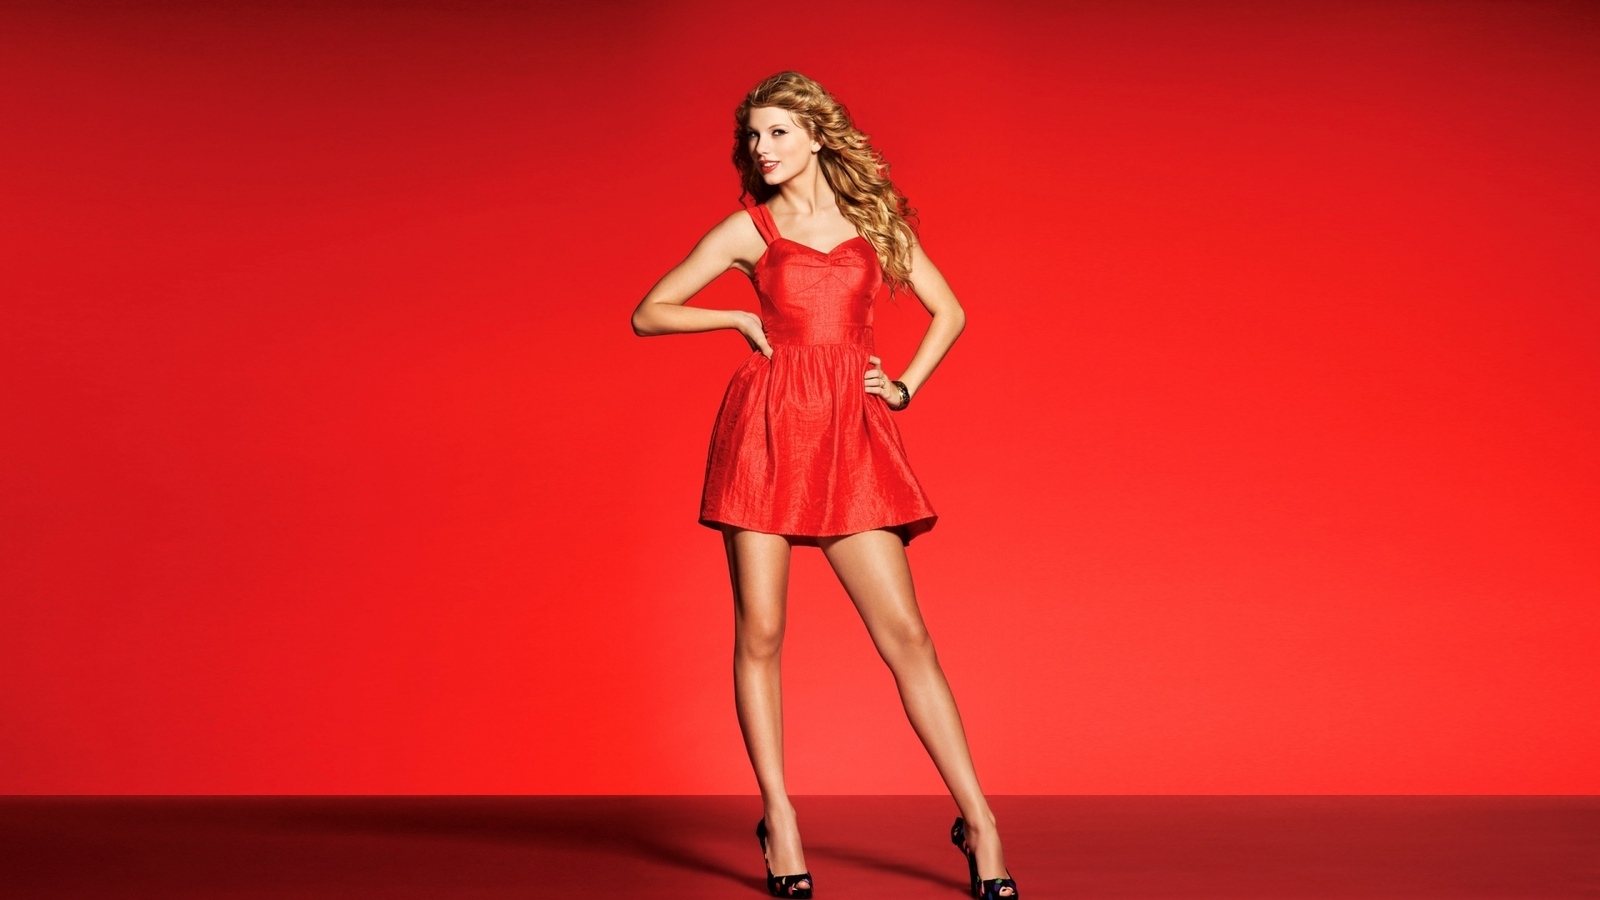 RED-taylor-swift-picture-images